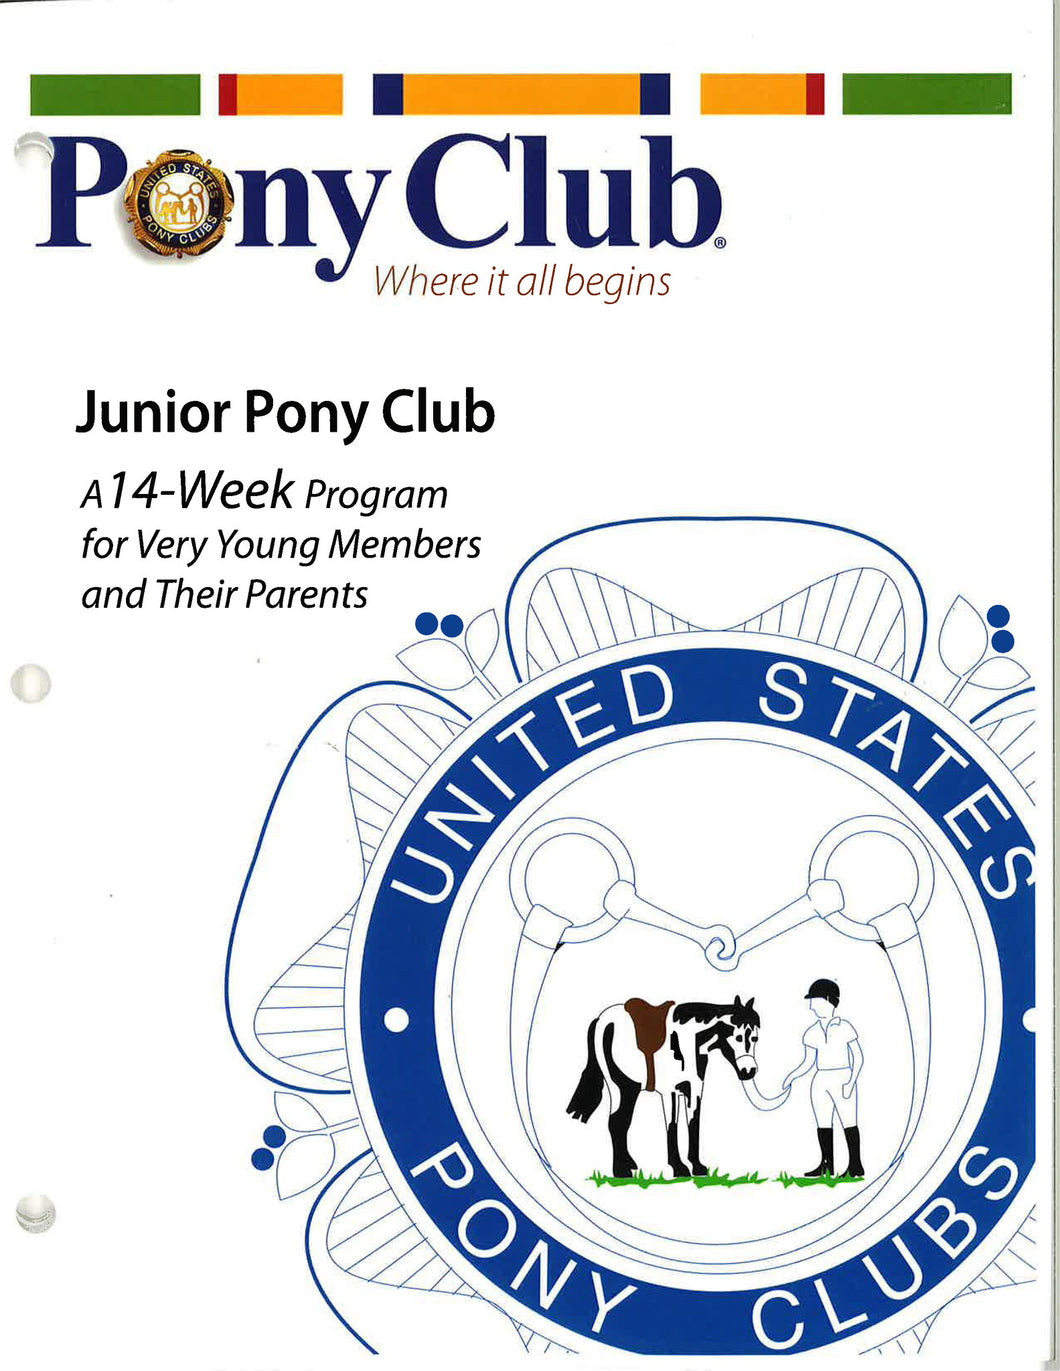 Junior Pony Club